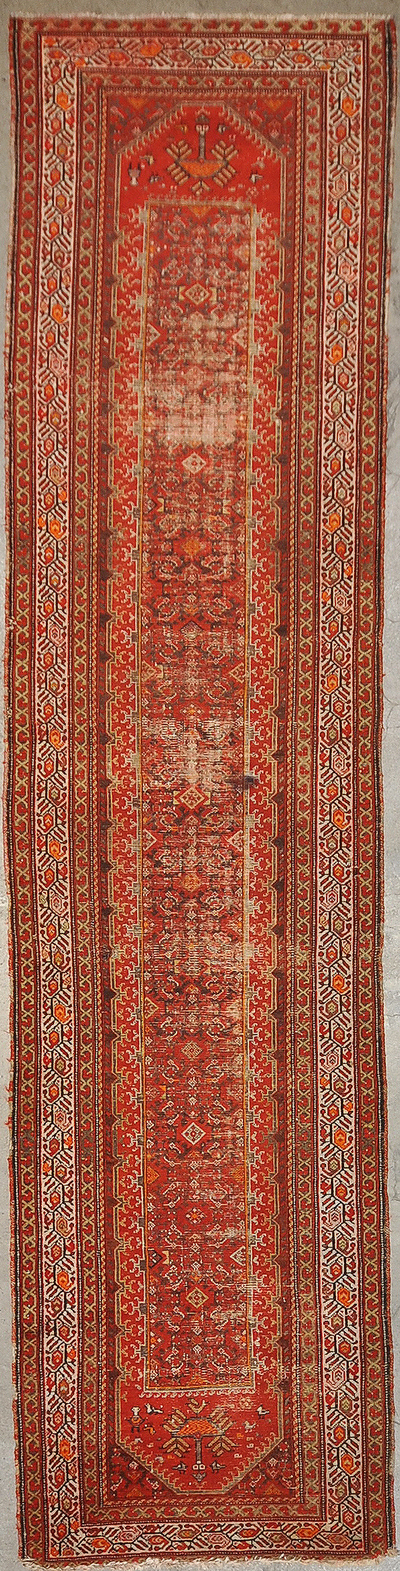 Antique Malayer Runner rugs and more oriental carpet -